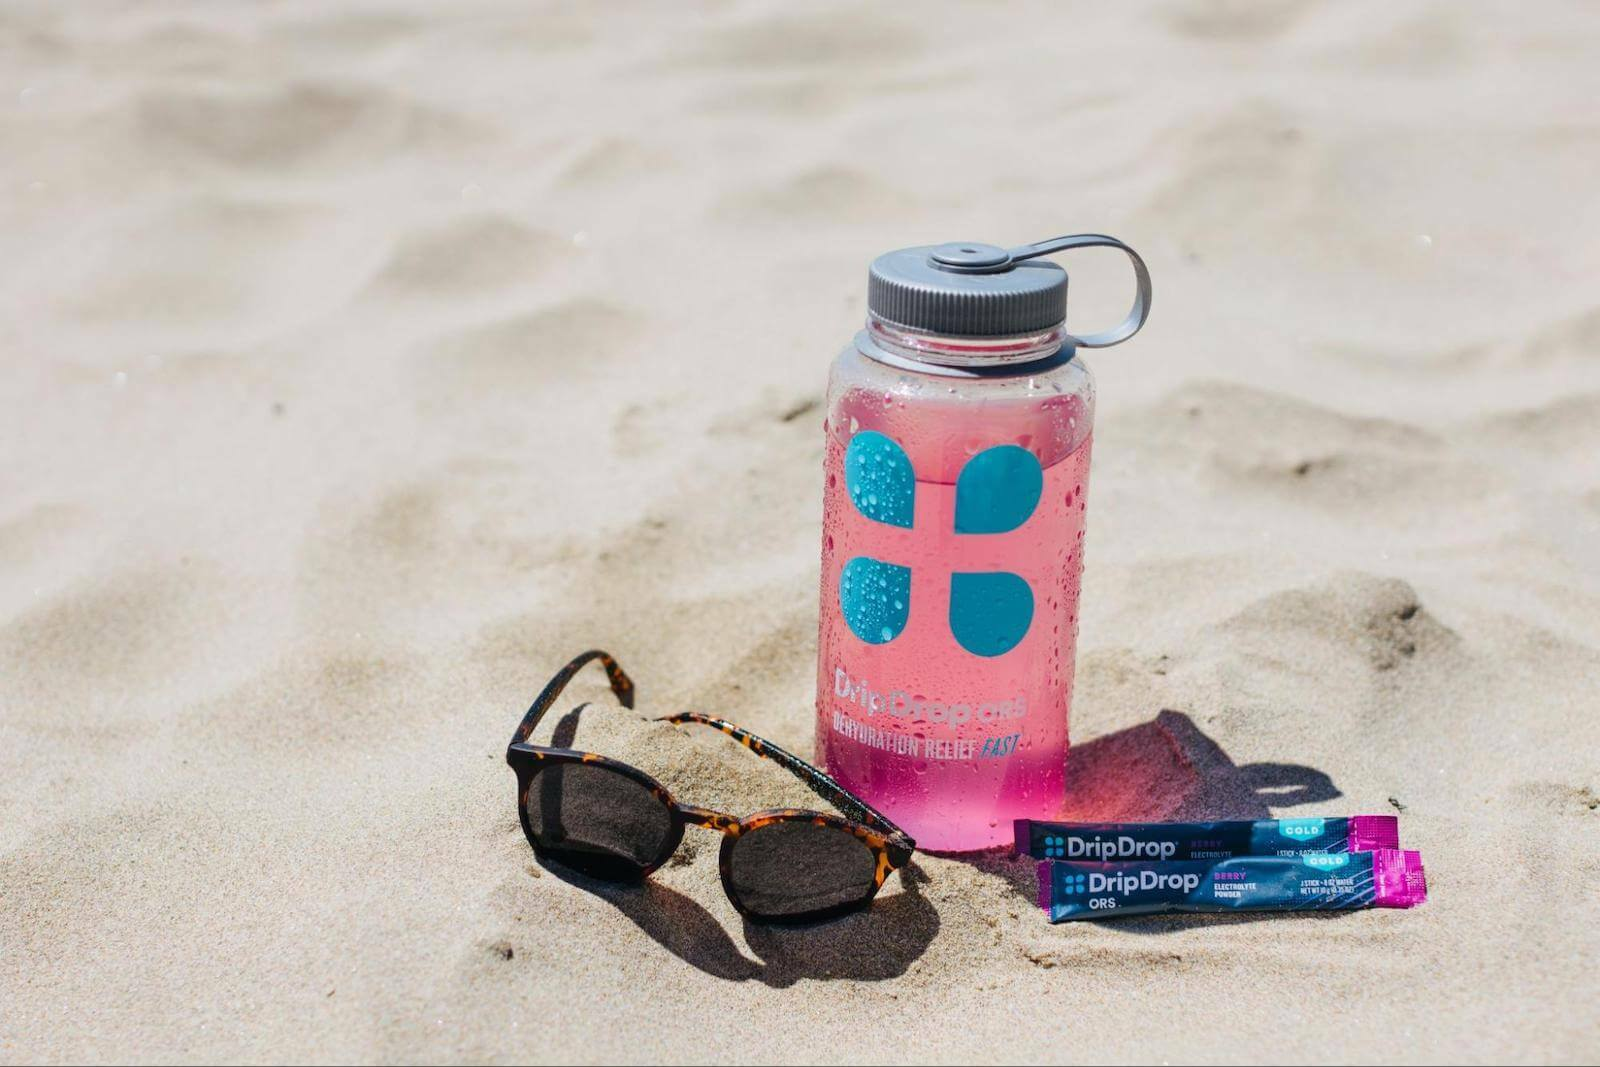 DripDrop ORS tumbler, sachets and sunglasses on the sand